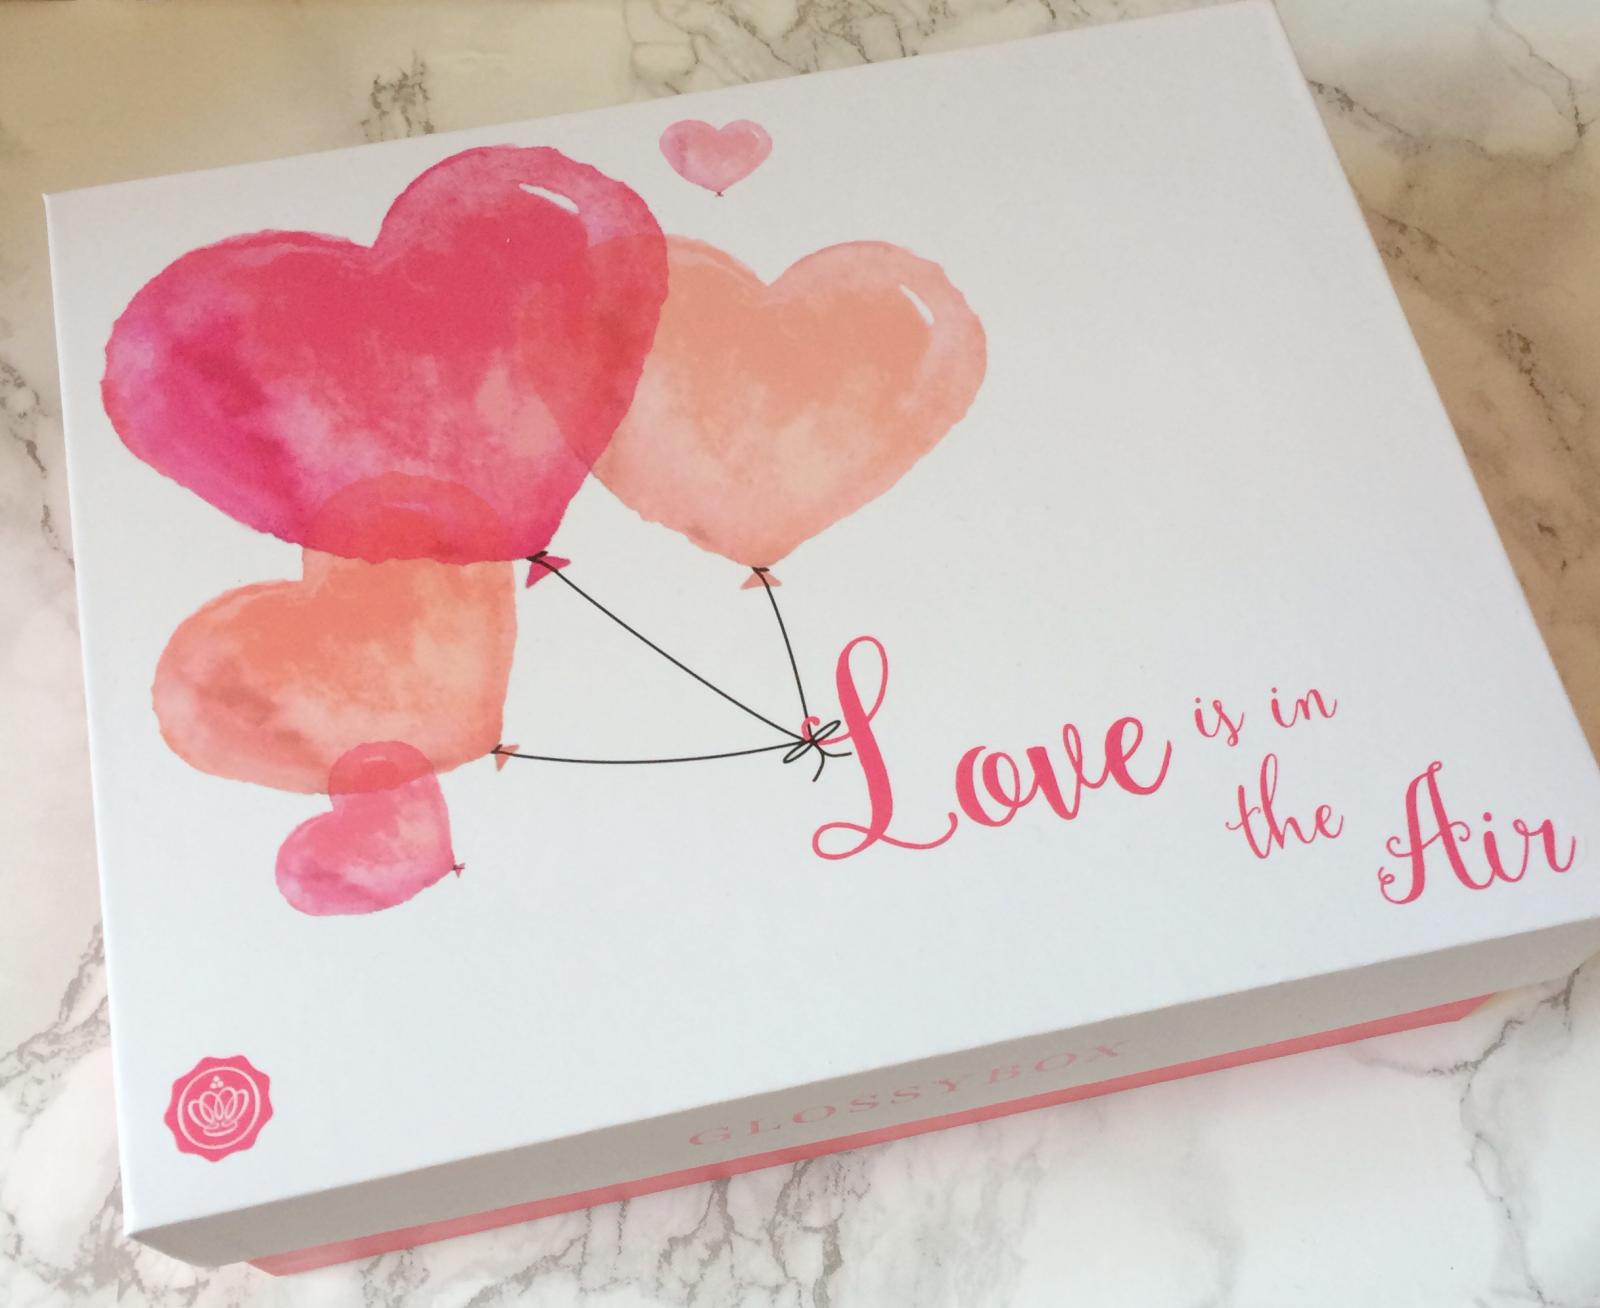 Glossybox February Unboxing | Love is in the air